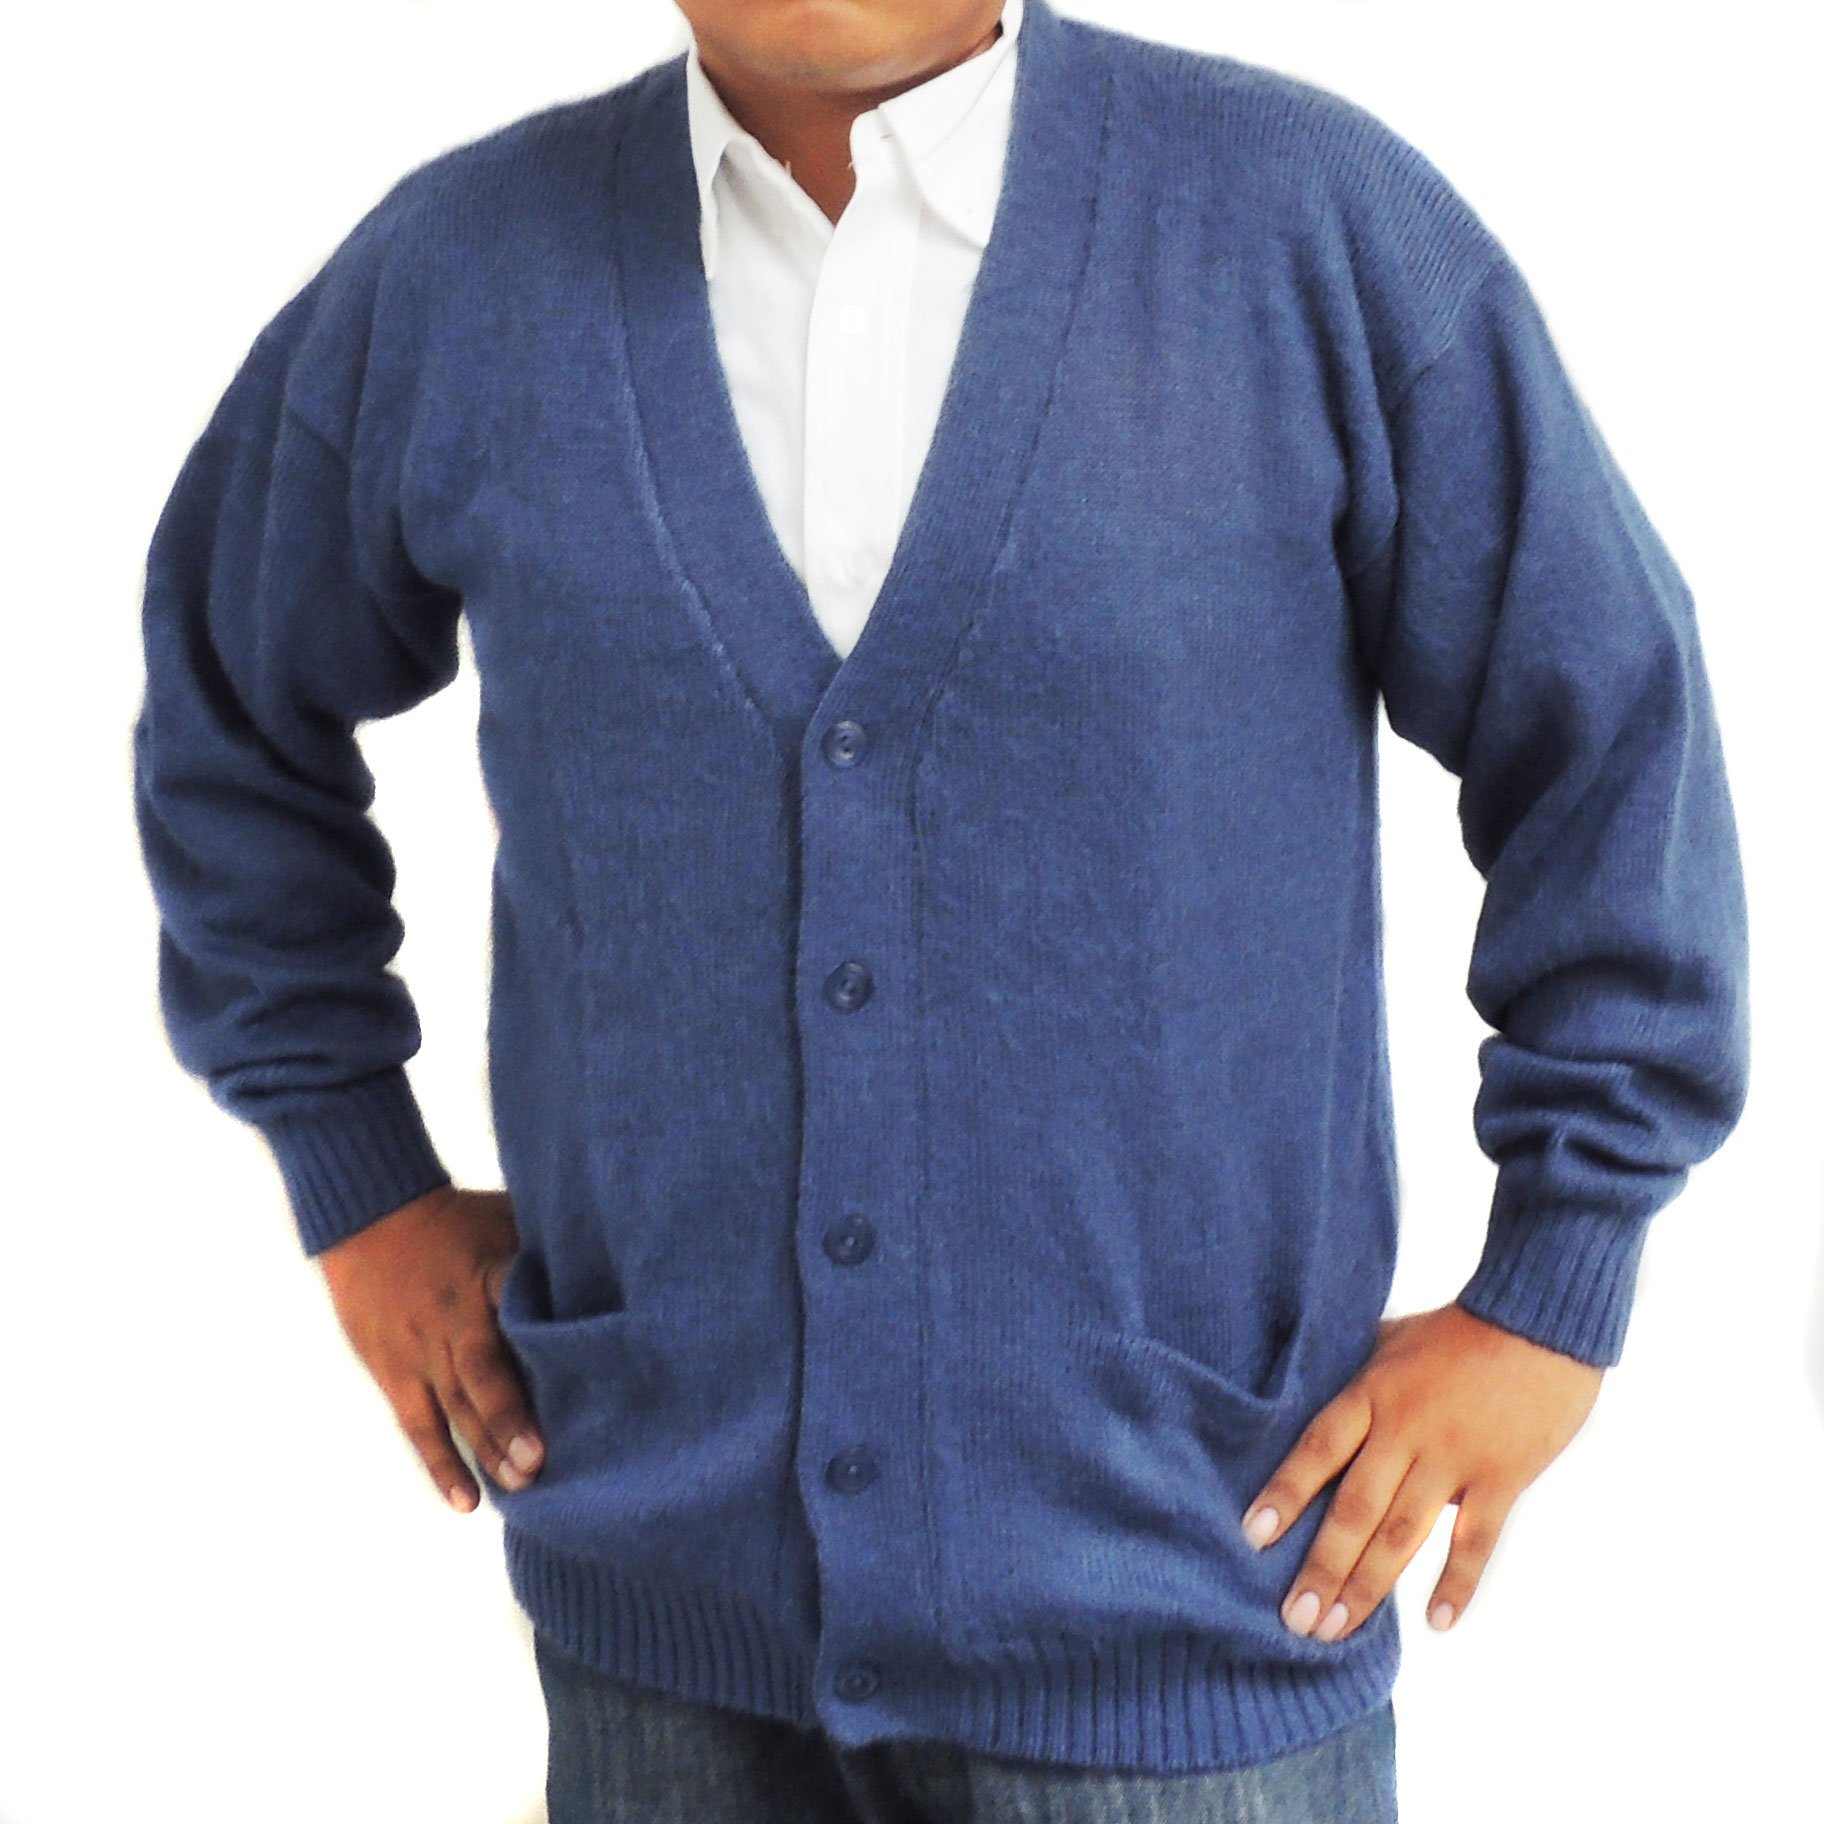 ALPACA CARDIGAN GOLF SWEATER JERSEY V neck buttons and Pockets made in PERU STEEL XL